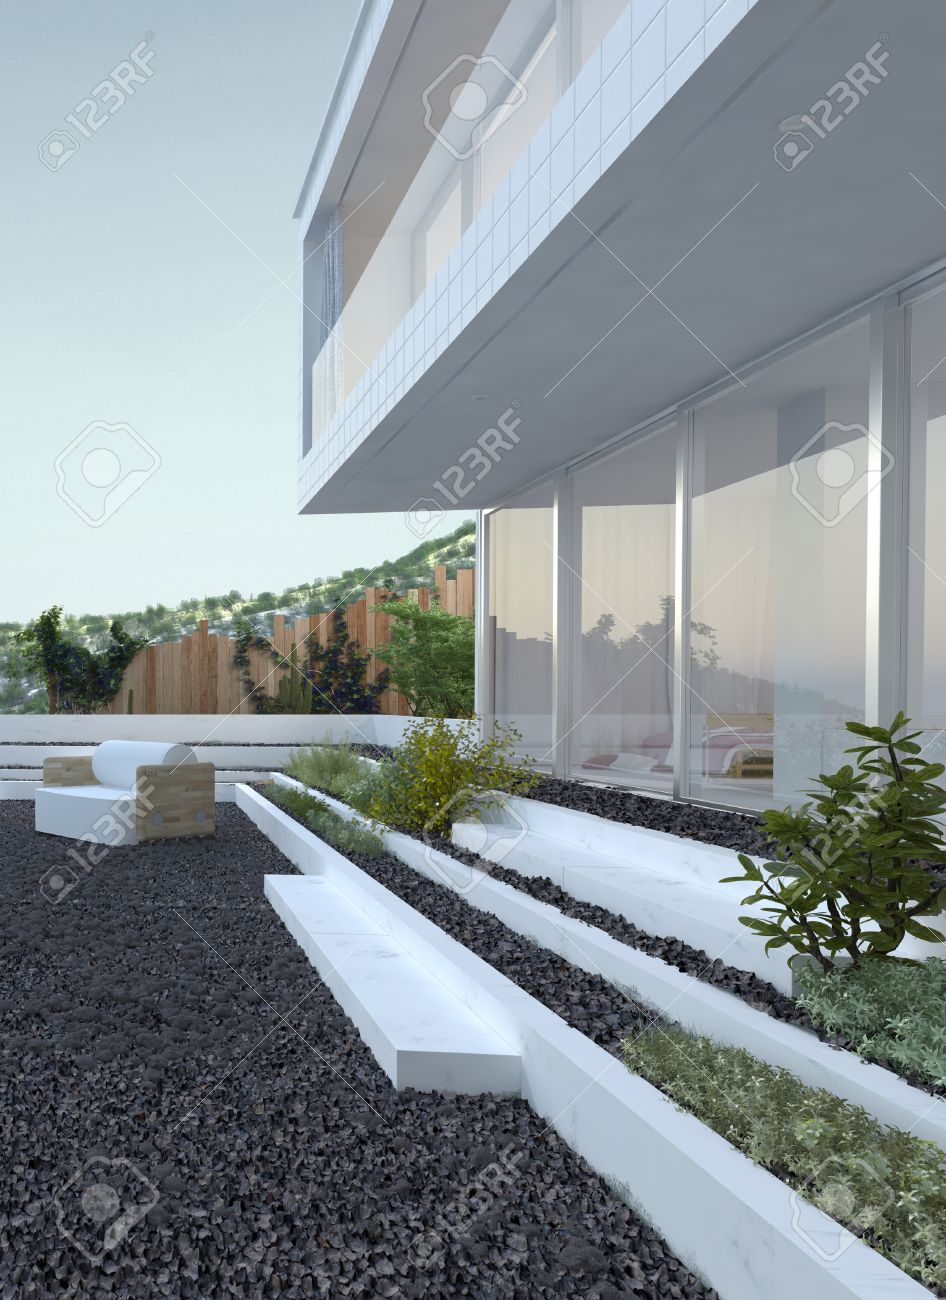 pebble patio with a comfortable armchair in front of a modern house with large glass windows